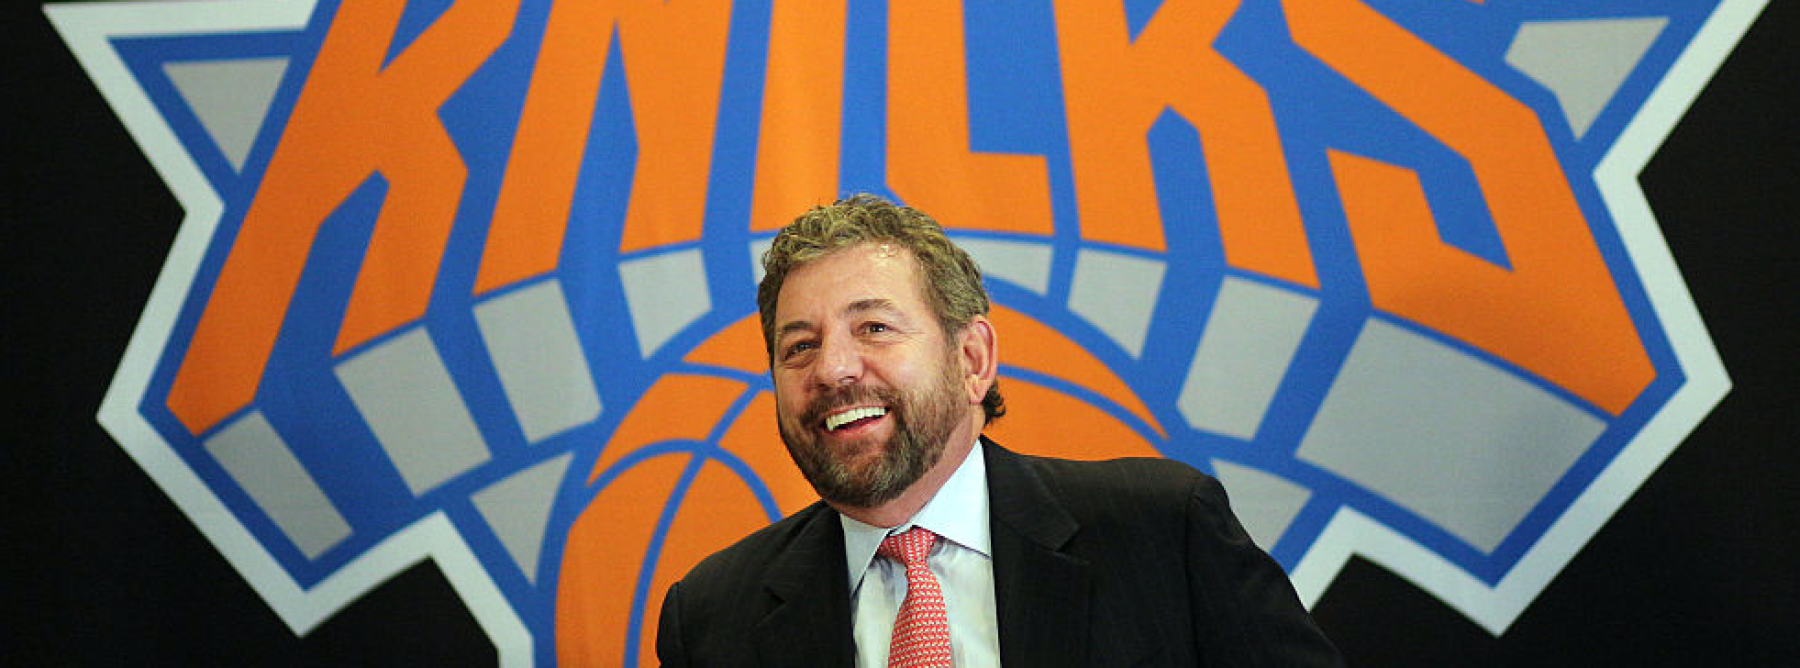 New York Knicks owner James Dolan at the Phil Jackson Press Conference introducing Jackson as the new president of the New York Knicks at Madison Square Garden, New York, USA. 18th March 2014. Photo Tim Clayton (Photo by Tim Clayton/Corbis via Getty Images)